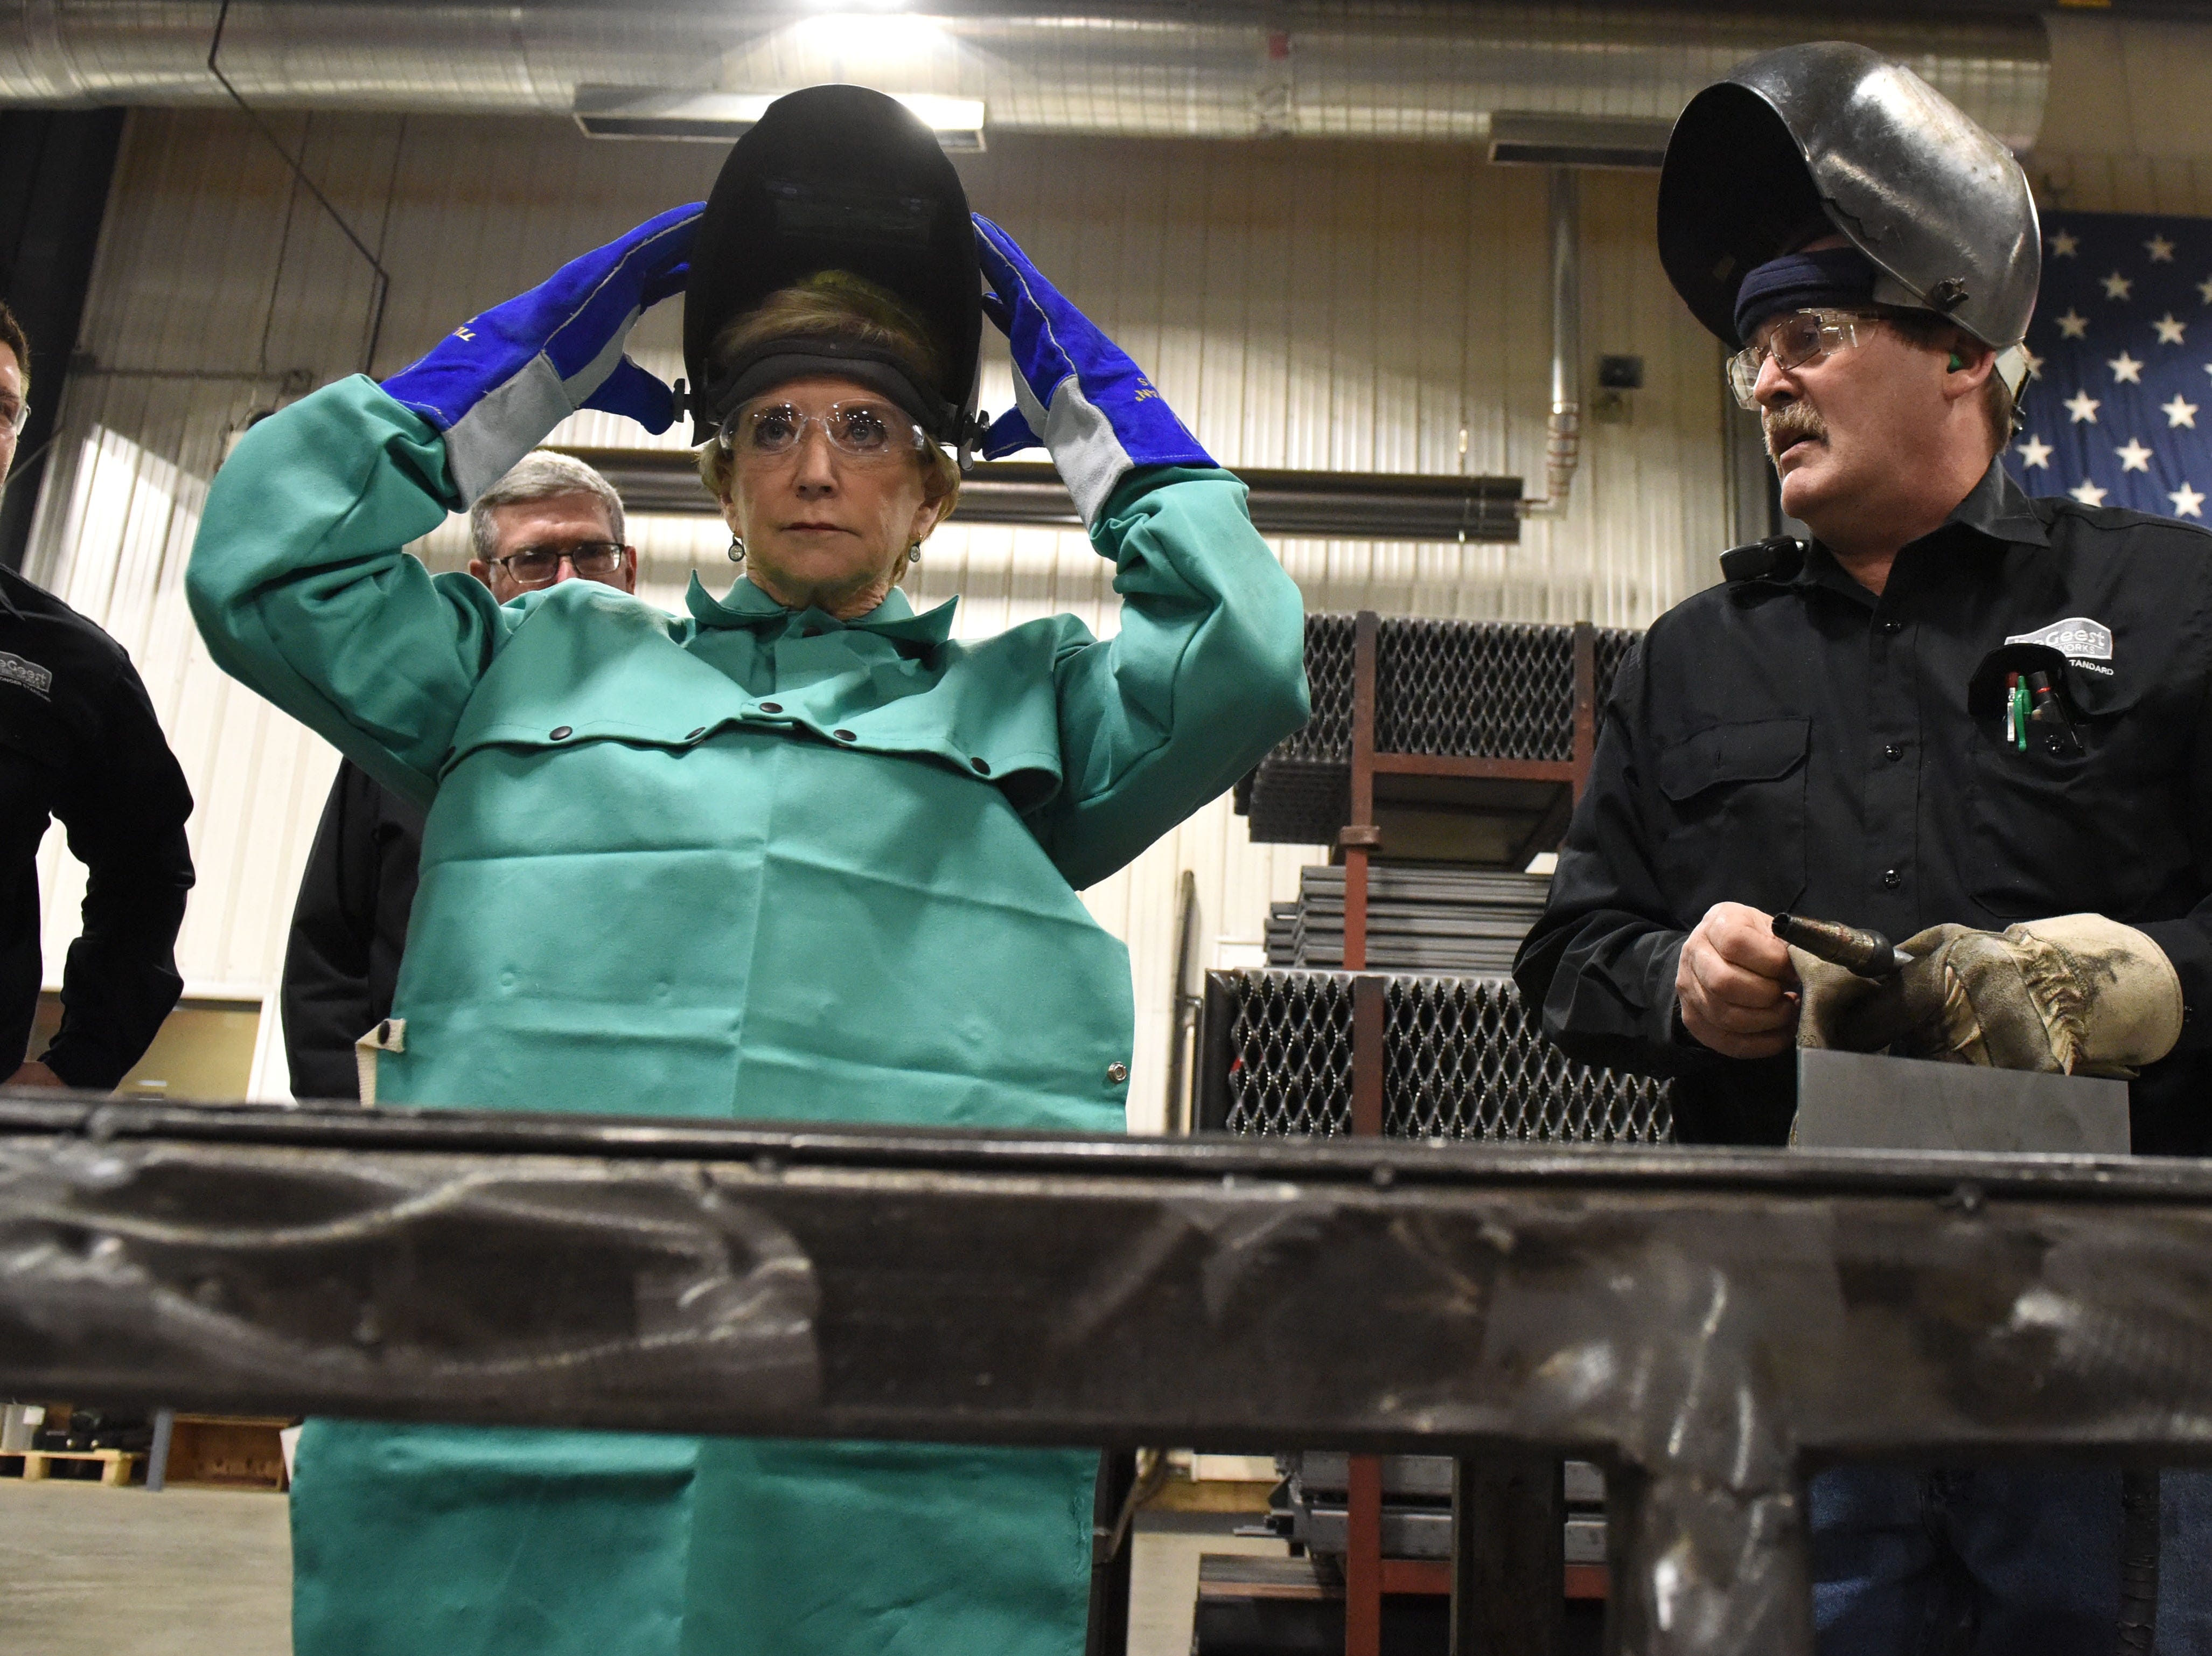 Linda McMahon, head of the U.S. Small Business Administration, gets ready to weld at DeGeest Steel Works in Tea, S.D., Thursday, Nov. 29, 2018.